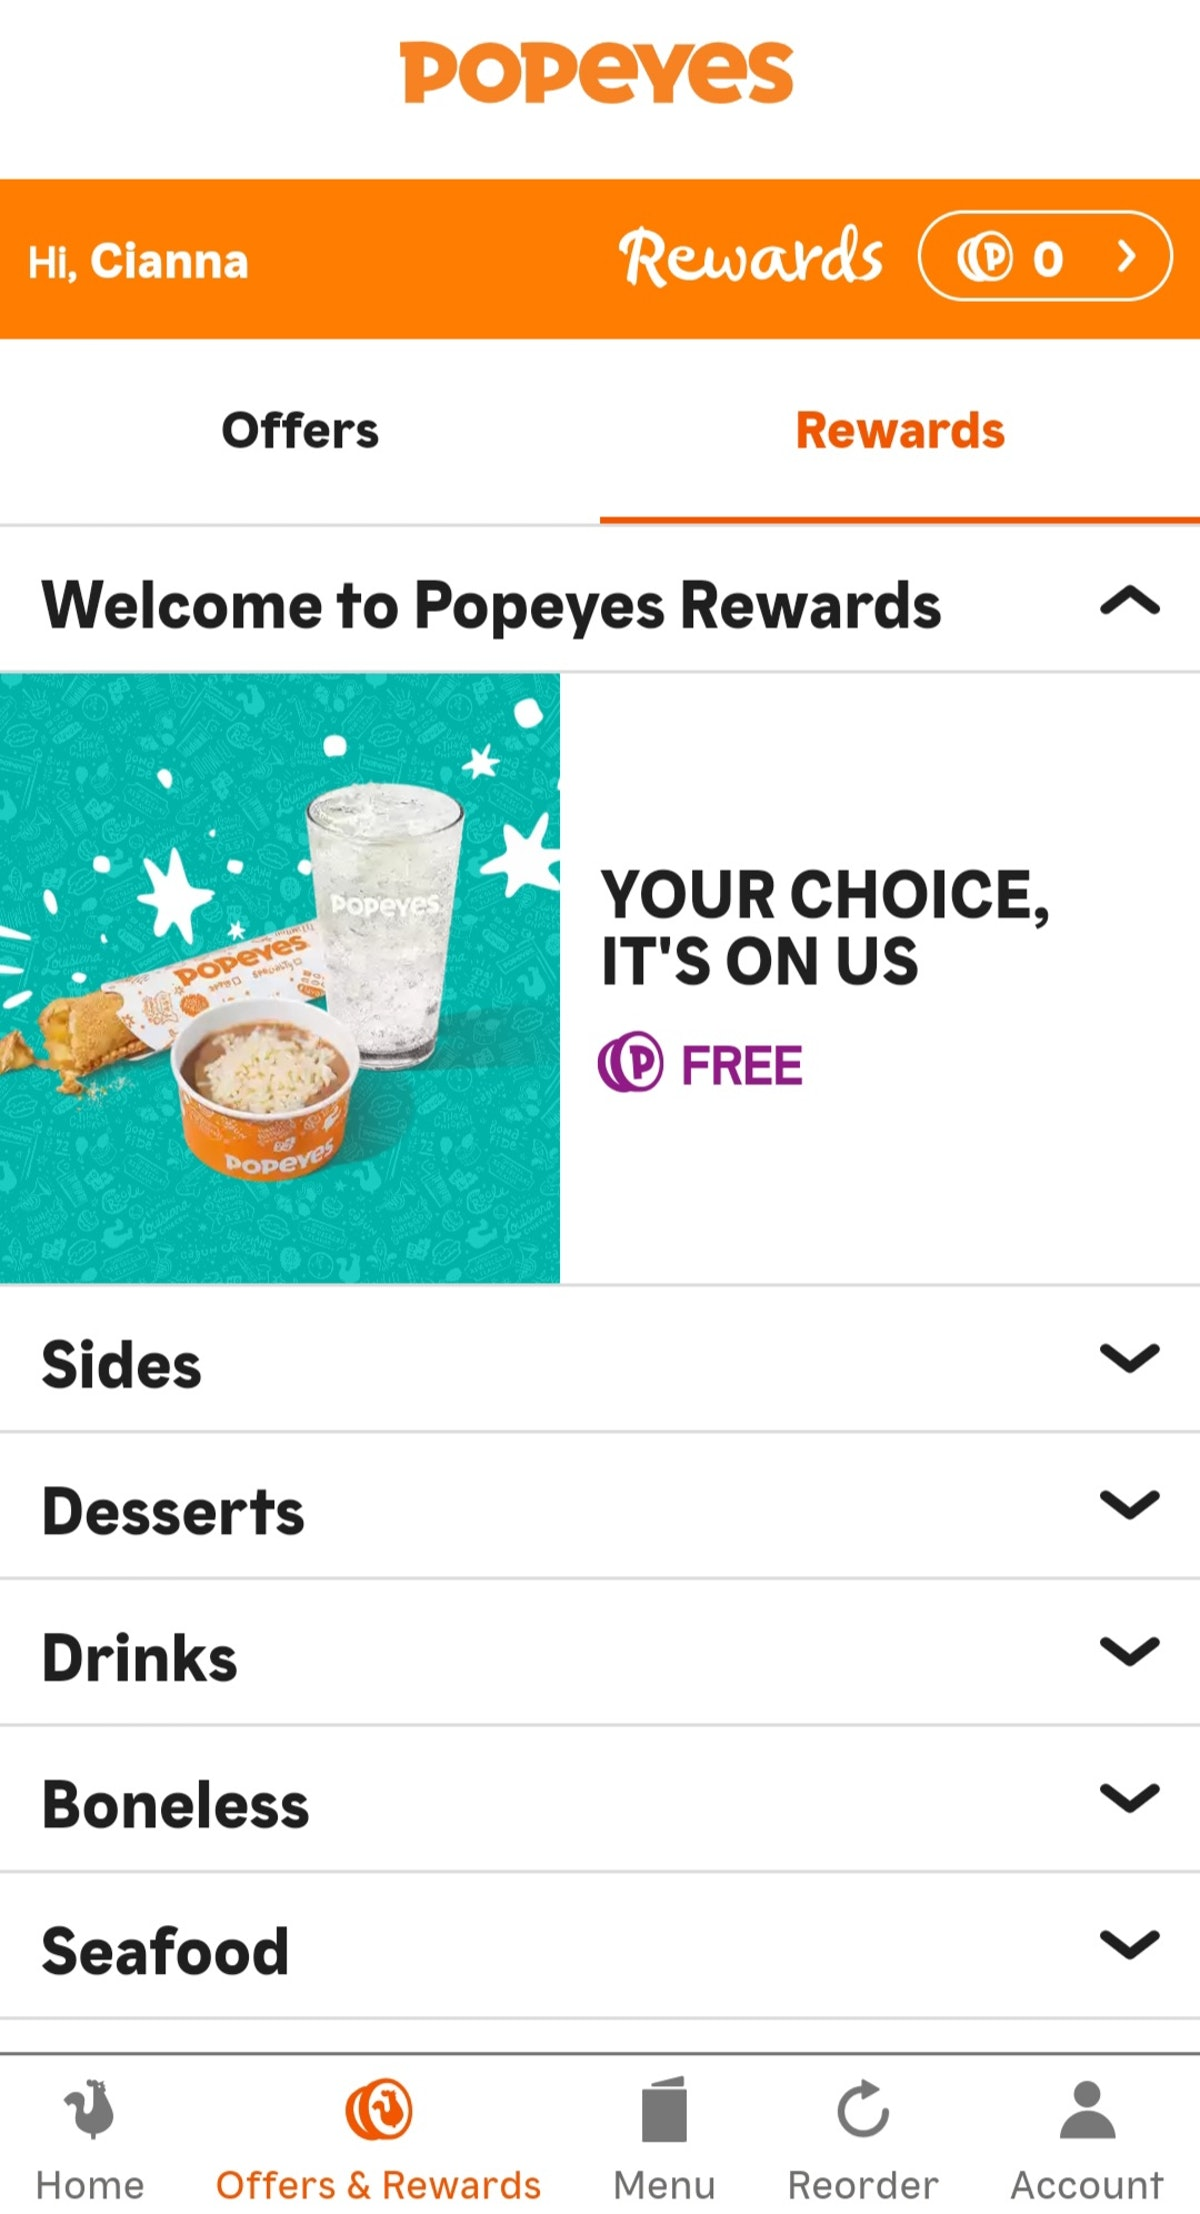 Here's how to get Popeyes Rewards to score deals like $1 happy hour sides and more.